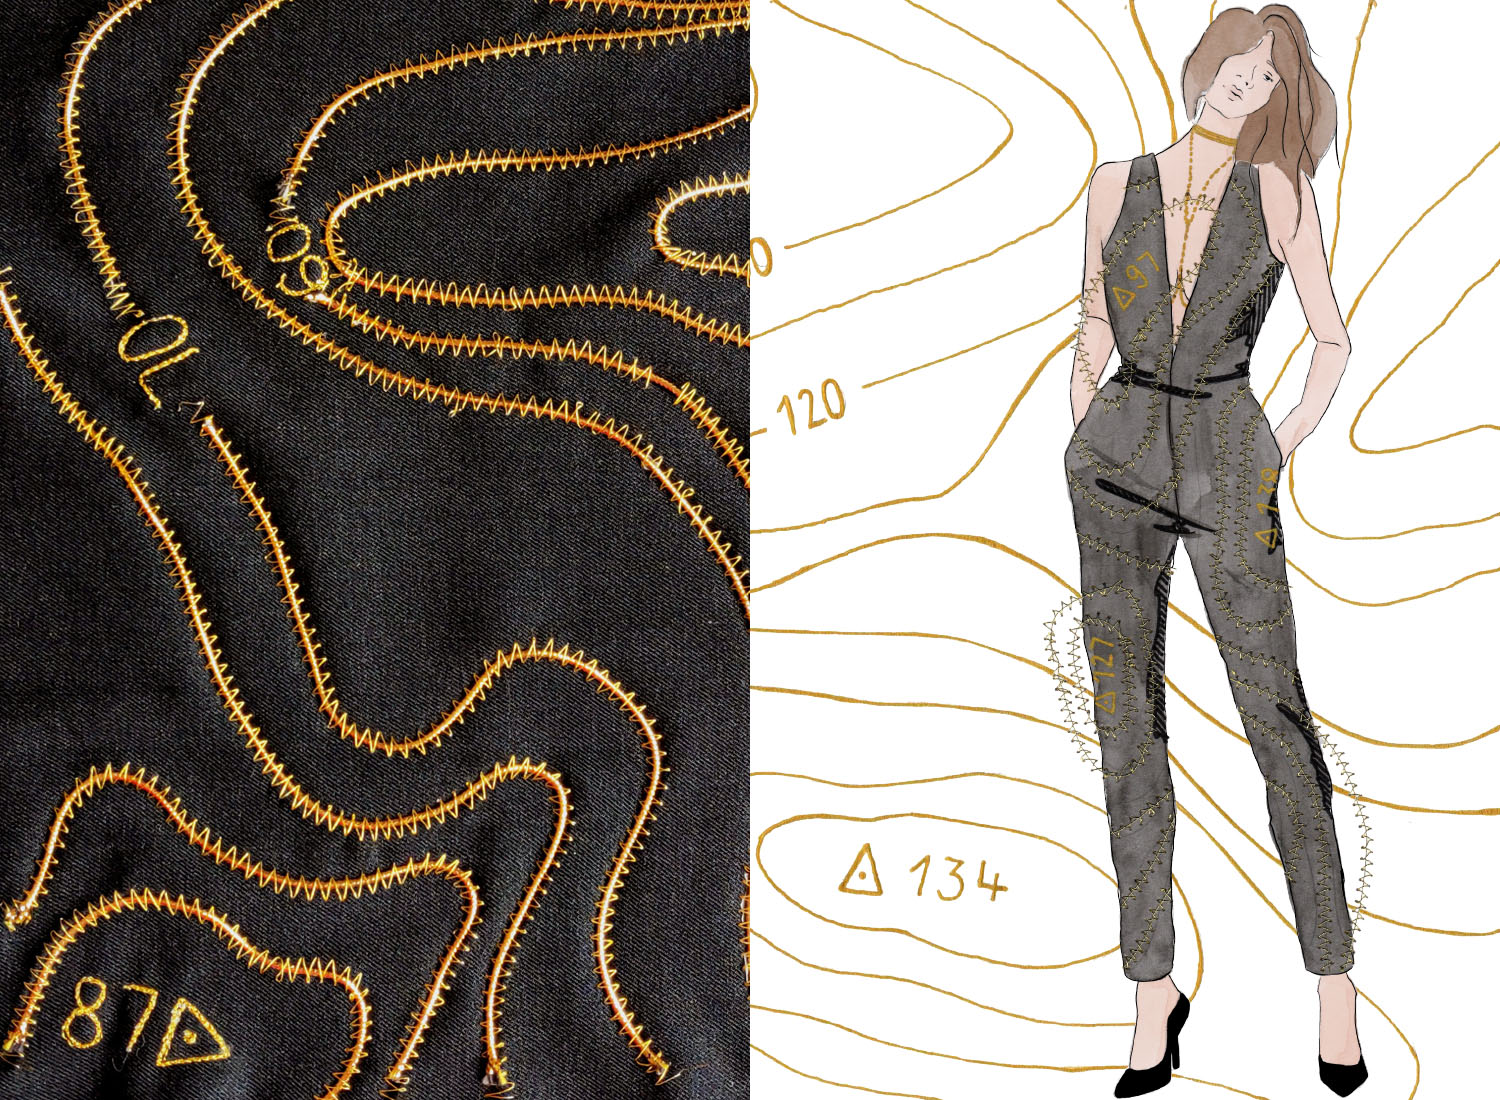 illustration of woman wearing a jumpsuit, alongside is close up photograph of a textile sample